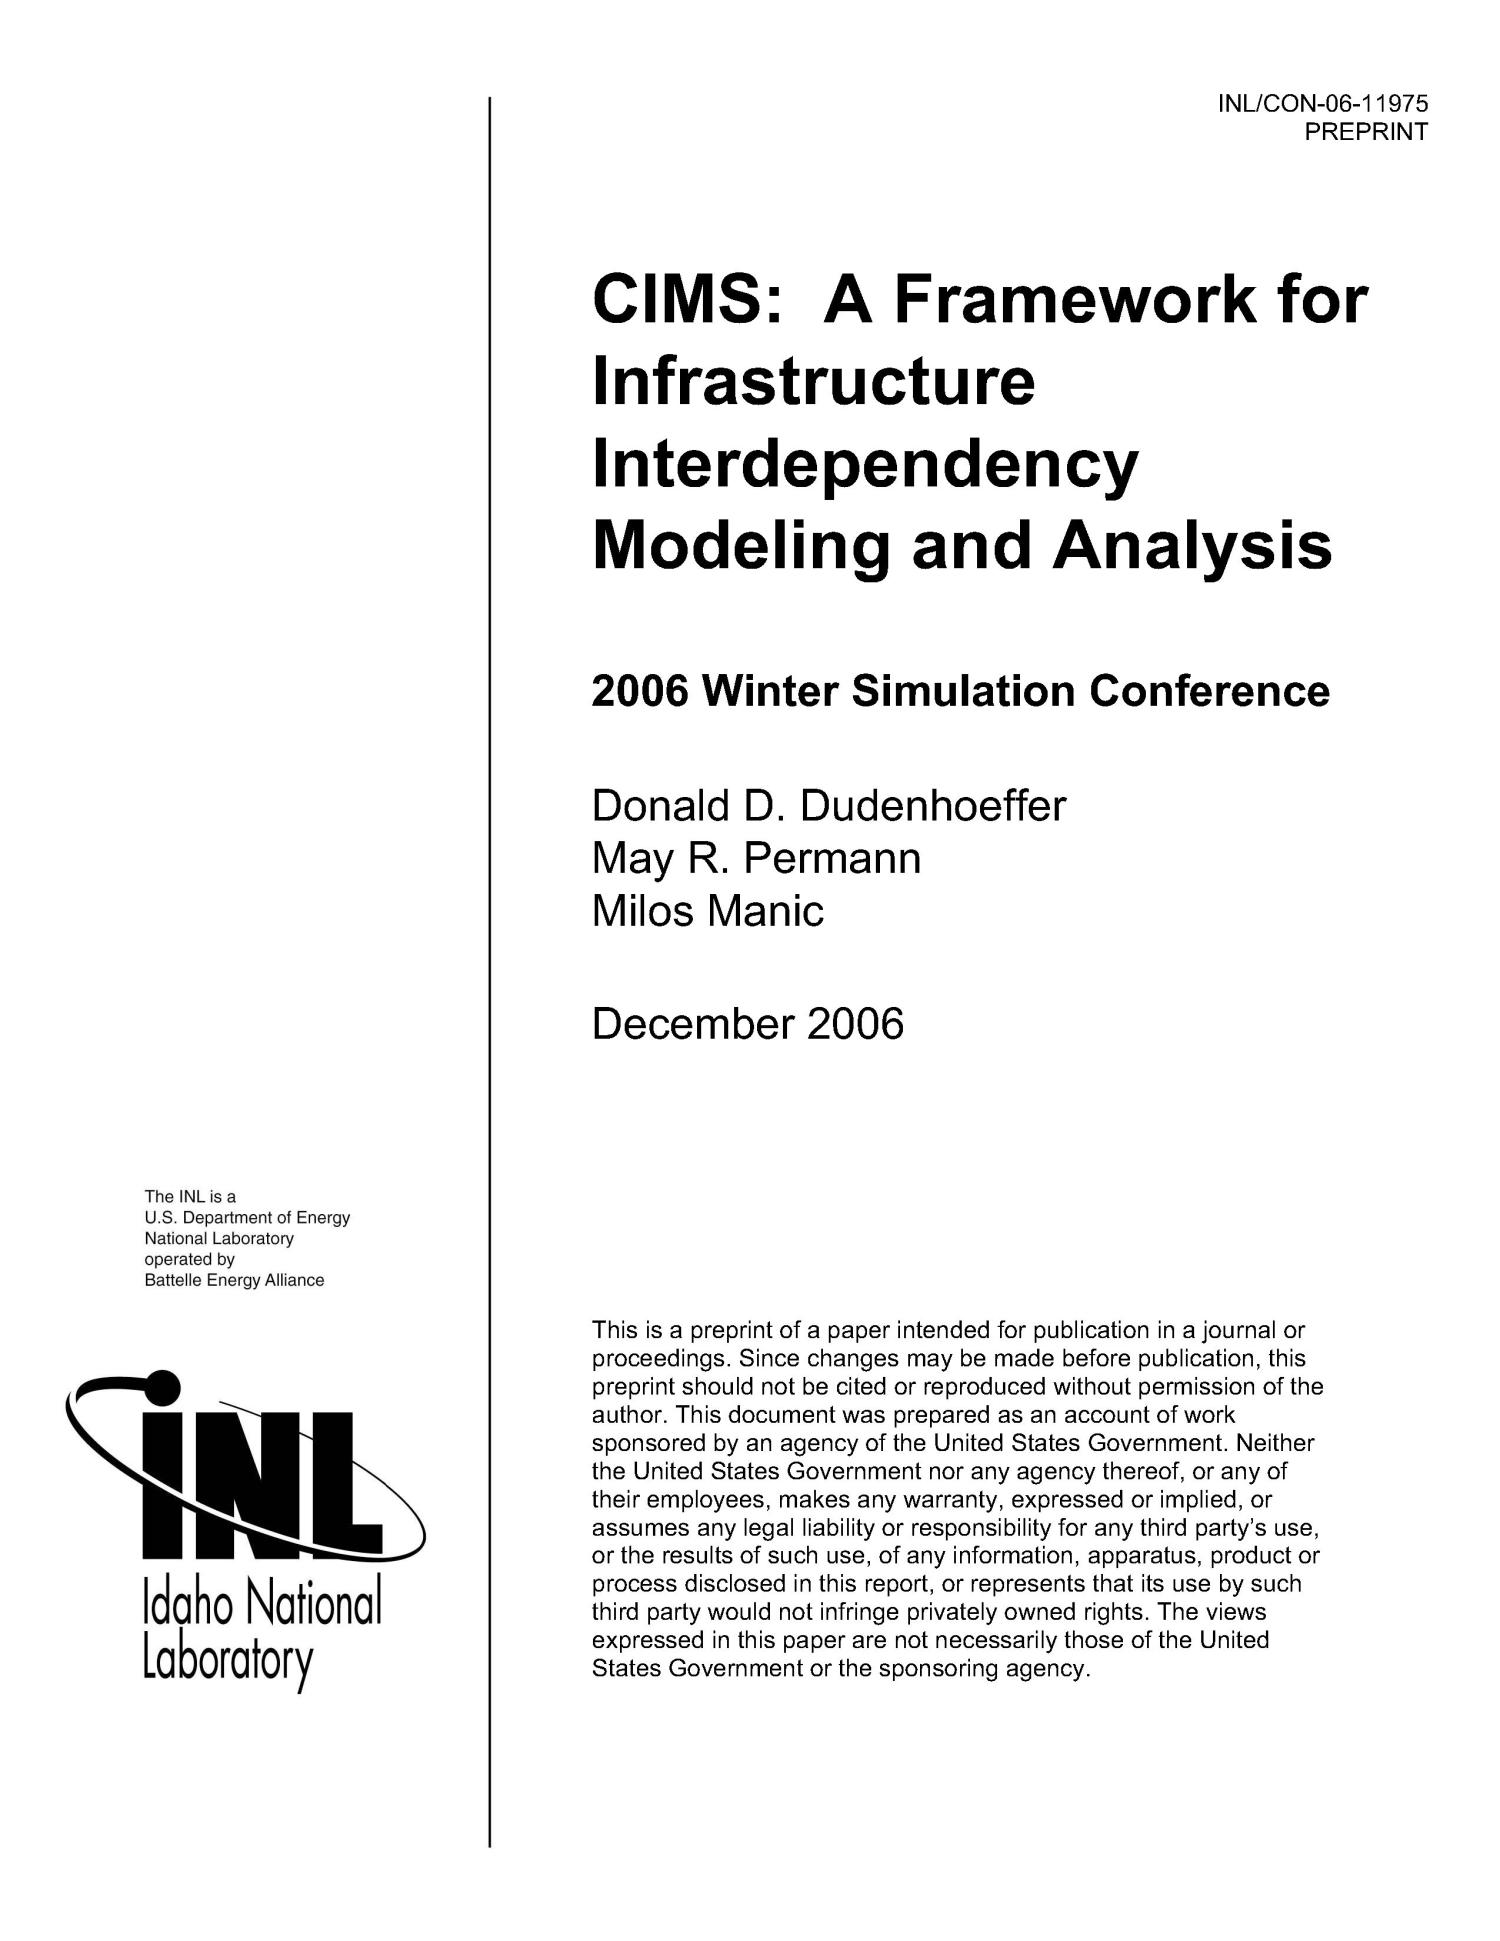 CIMS A FRAMEWORK FOR INFRASTRUCTURE INTERDEPENDENCY MODELING AND ANALYSIS